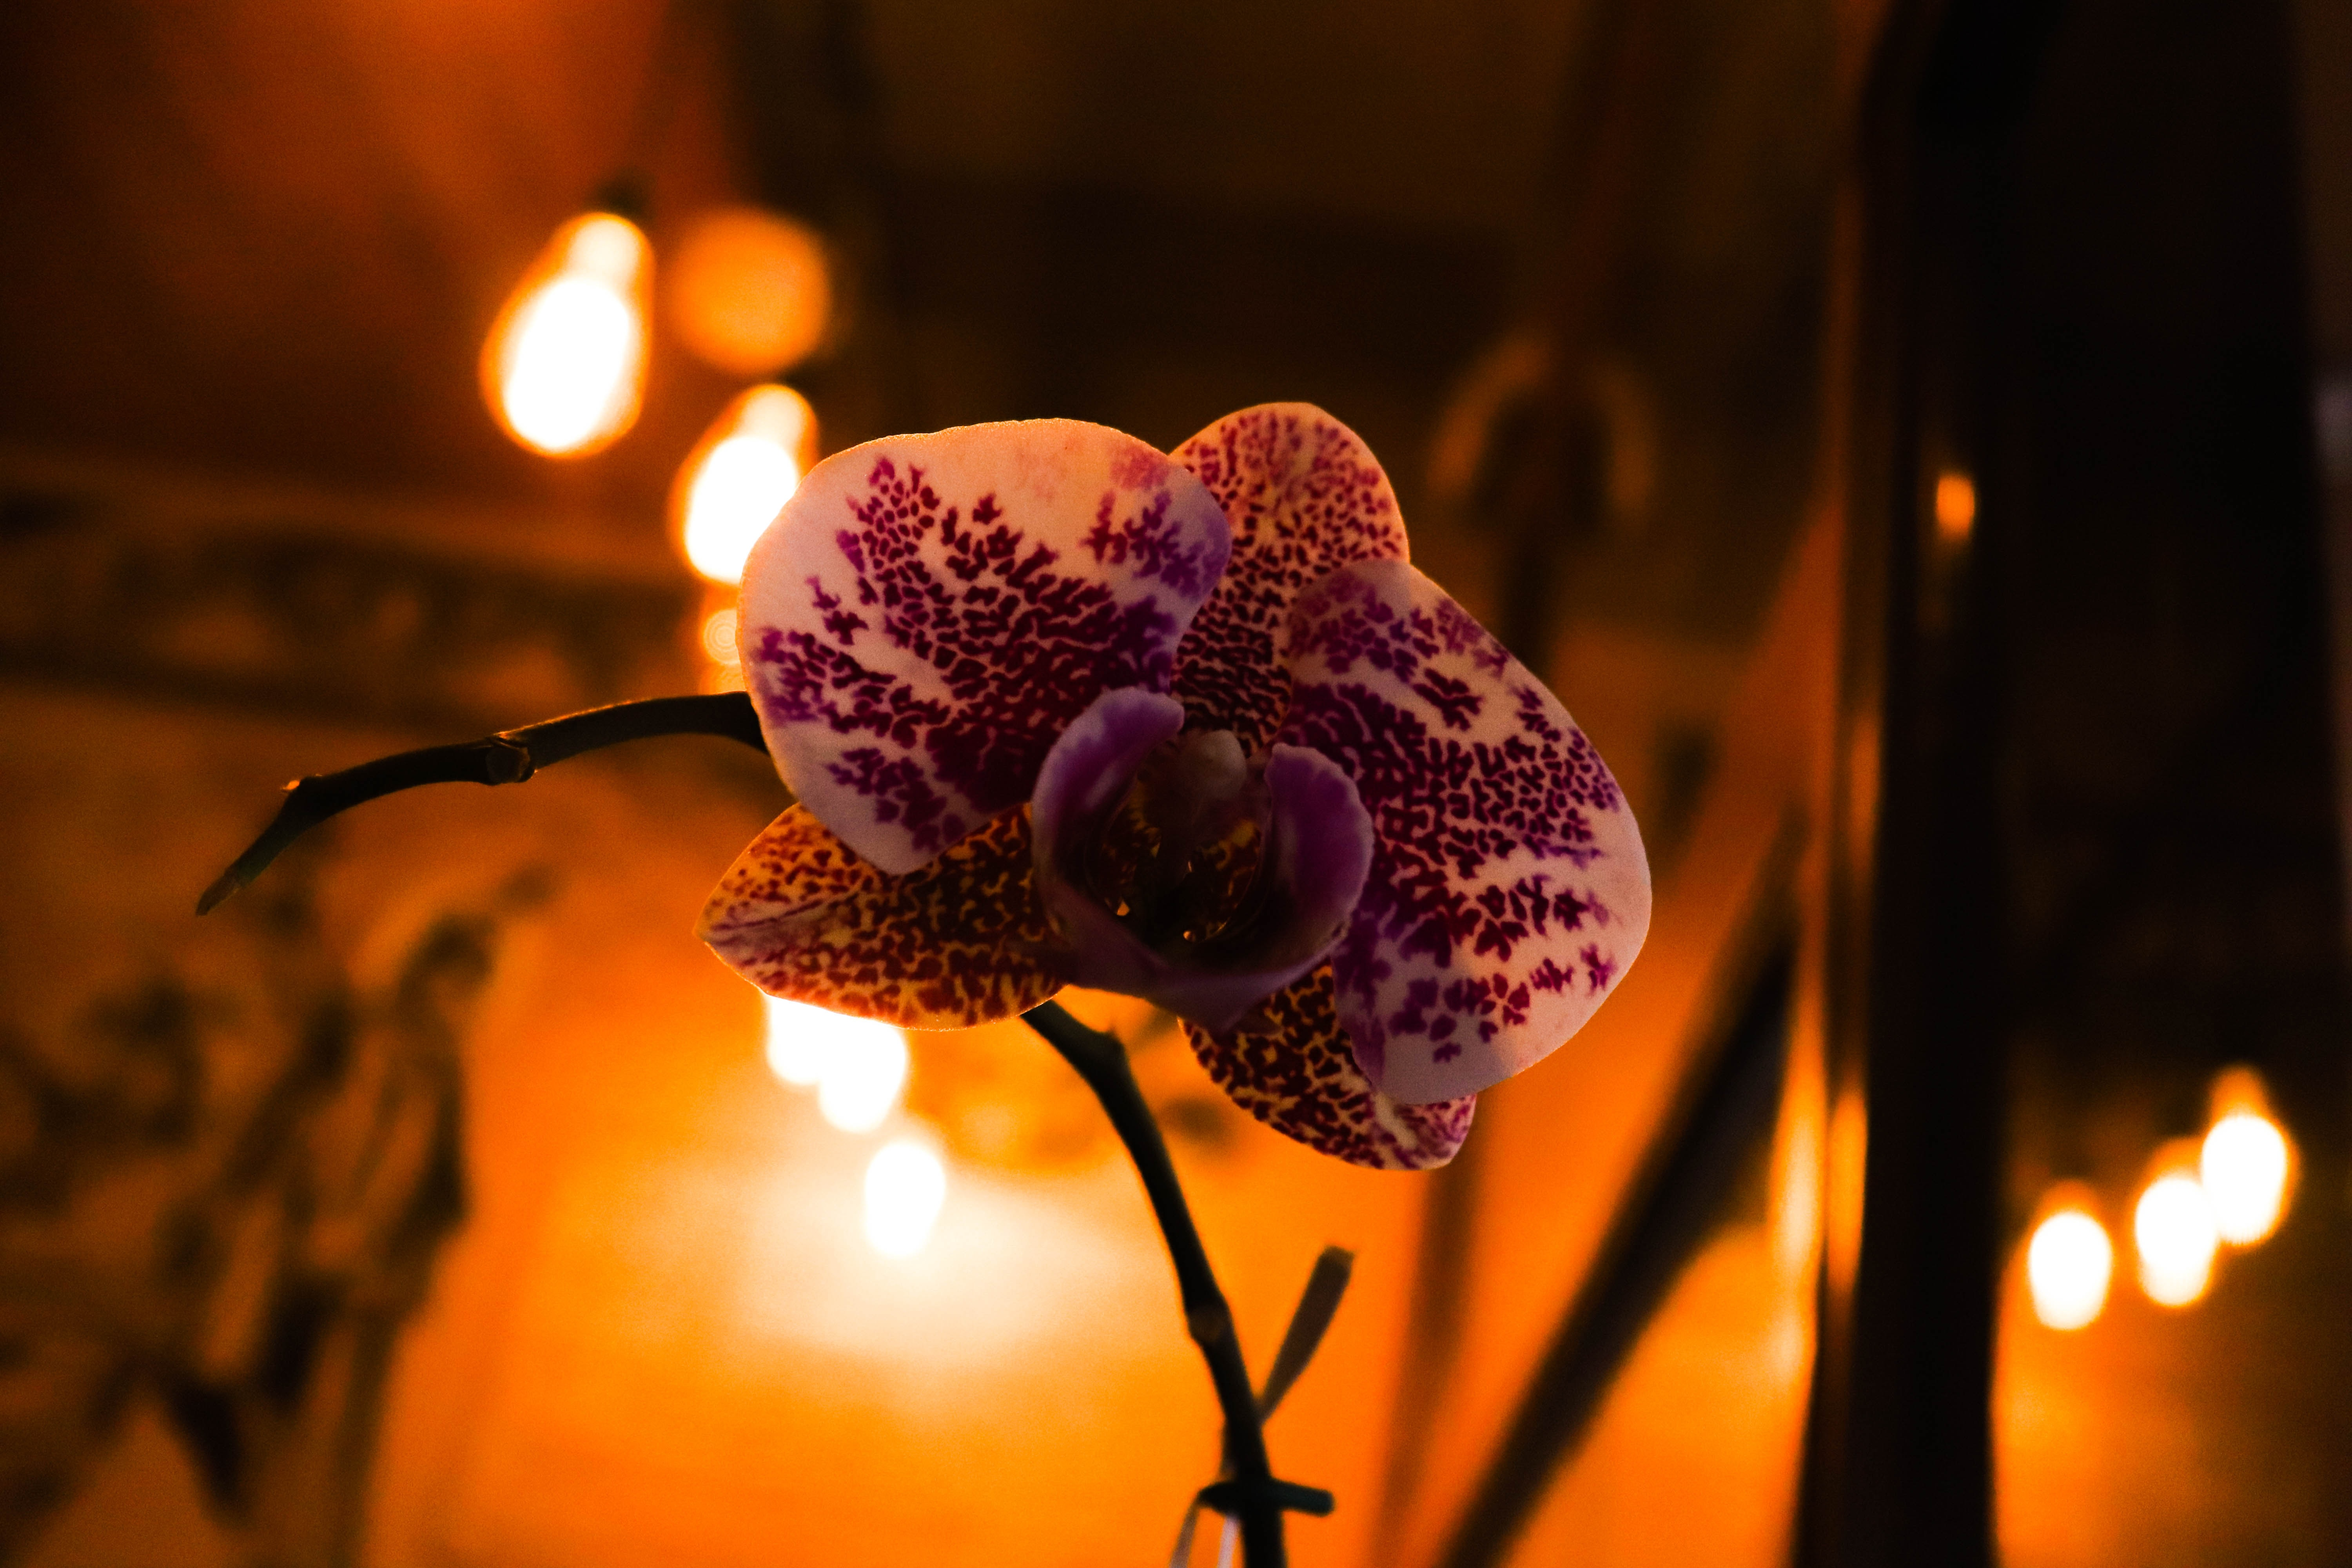 Orchid & candle